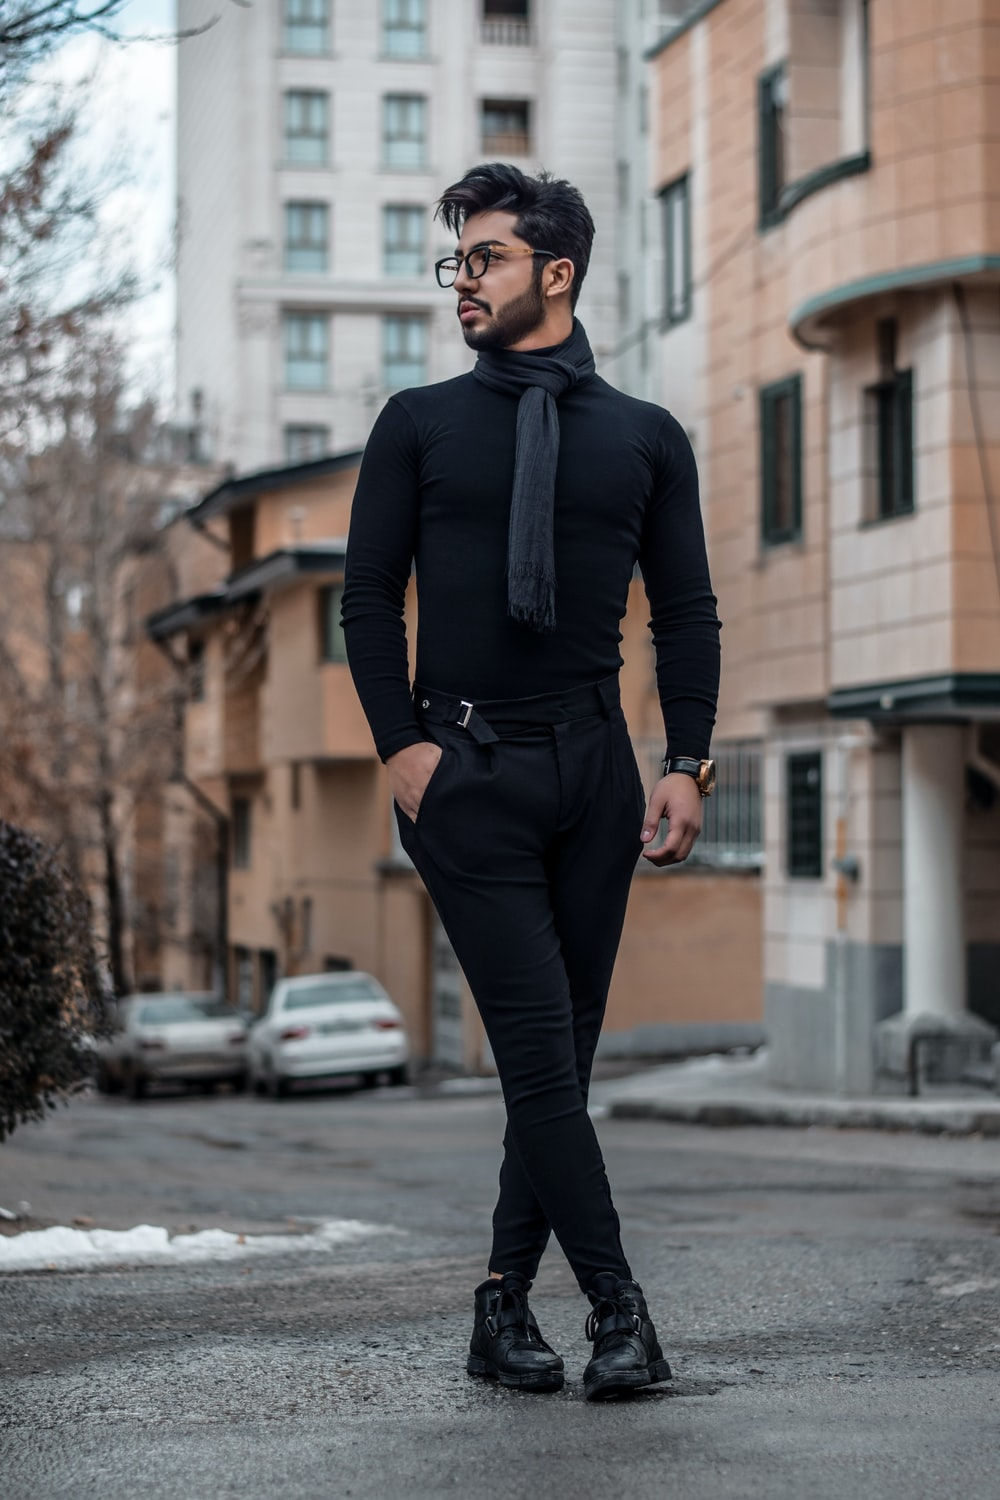 man in black dress shirt, necktie, and pants standing on street